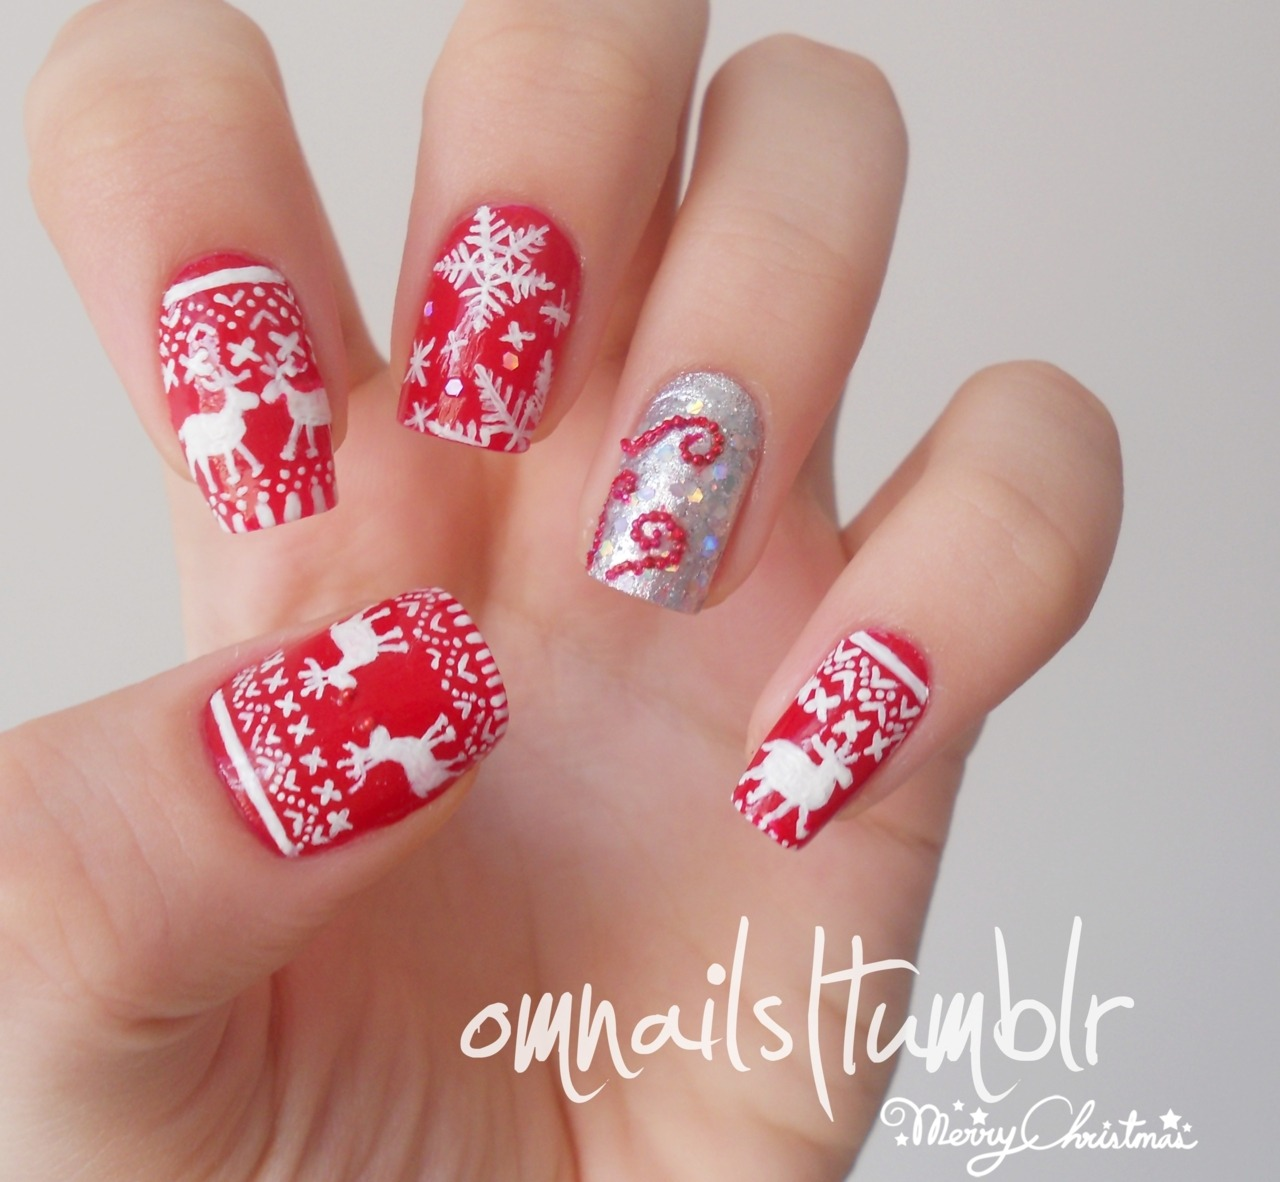 omnails:  Christmas nail art | Inspired by those weird christmas sweaters I wanted to celebrate the most wonderful time of the year with my nails decorated for it, hope you guys like it and I wish you a merry christmas!  Aww these are so cute